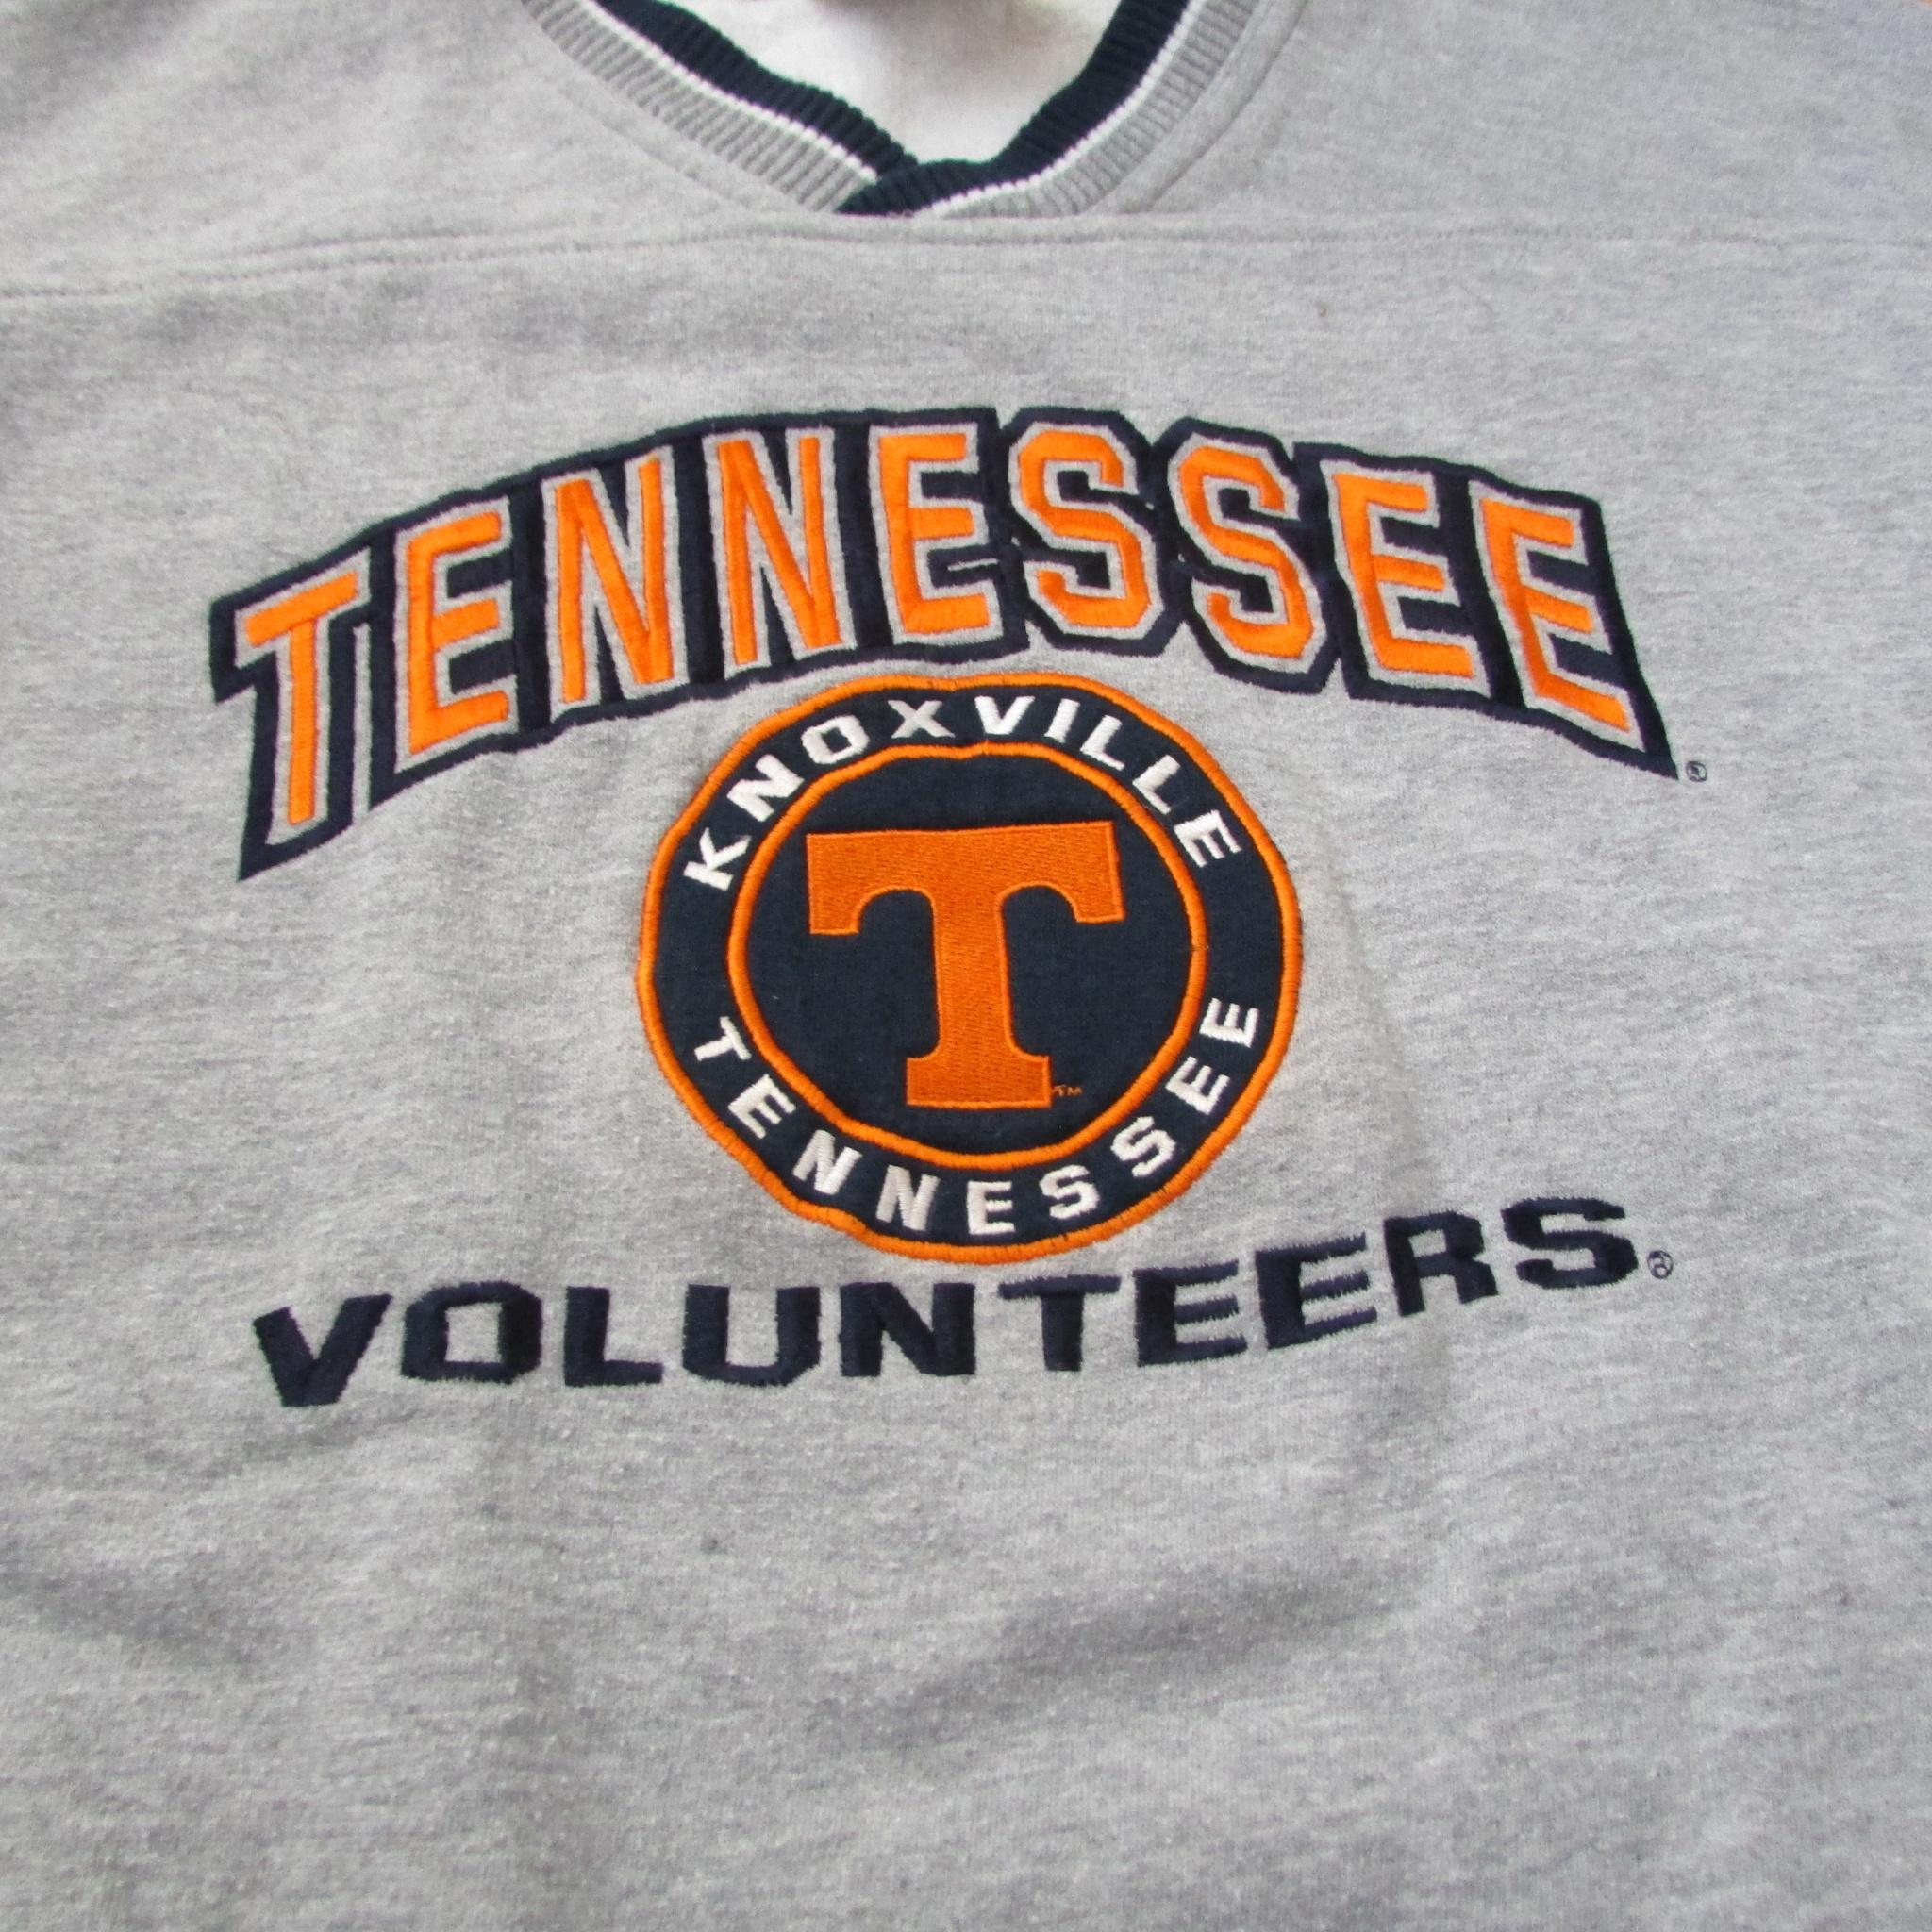 University of Tennessee Volunteers Football Sweater by LEE Sports Sz L